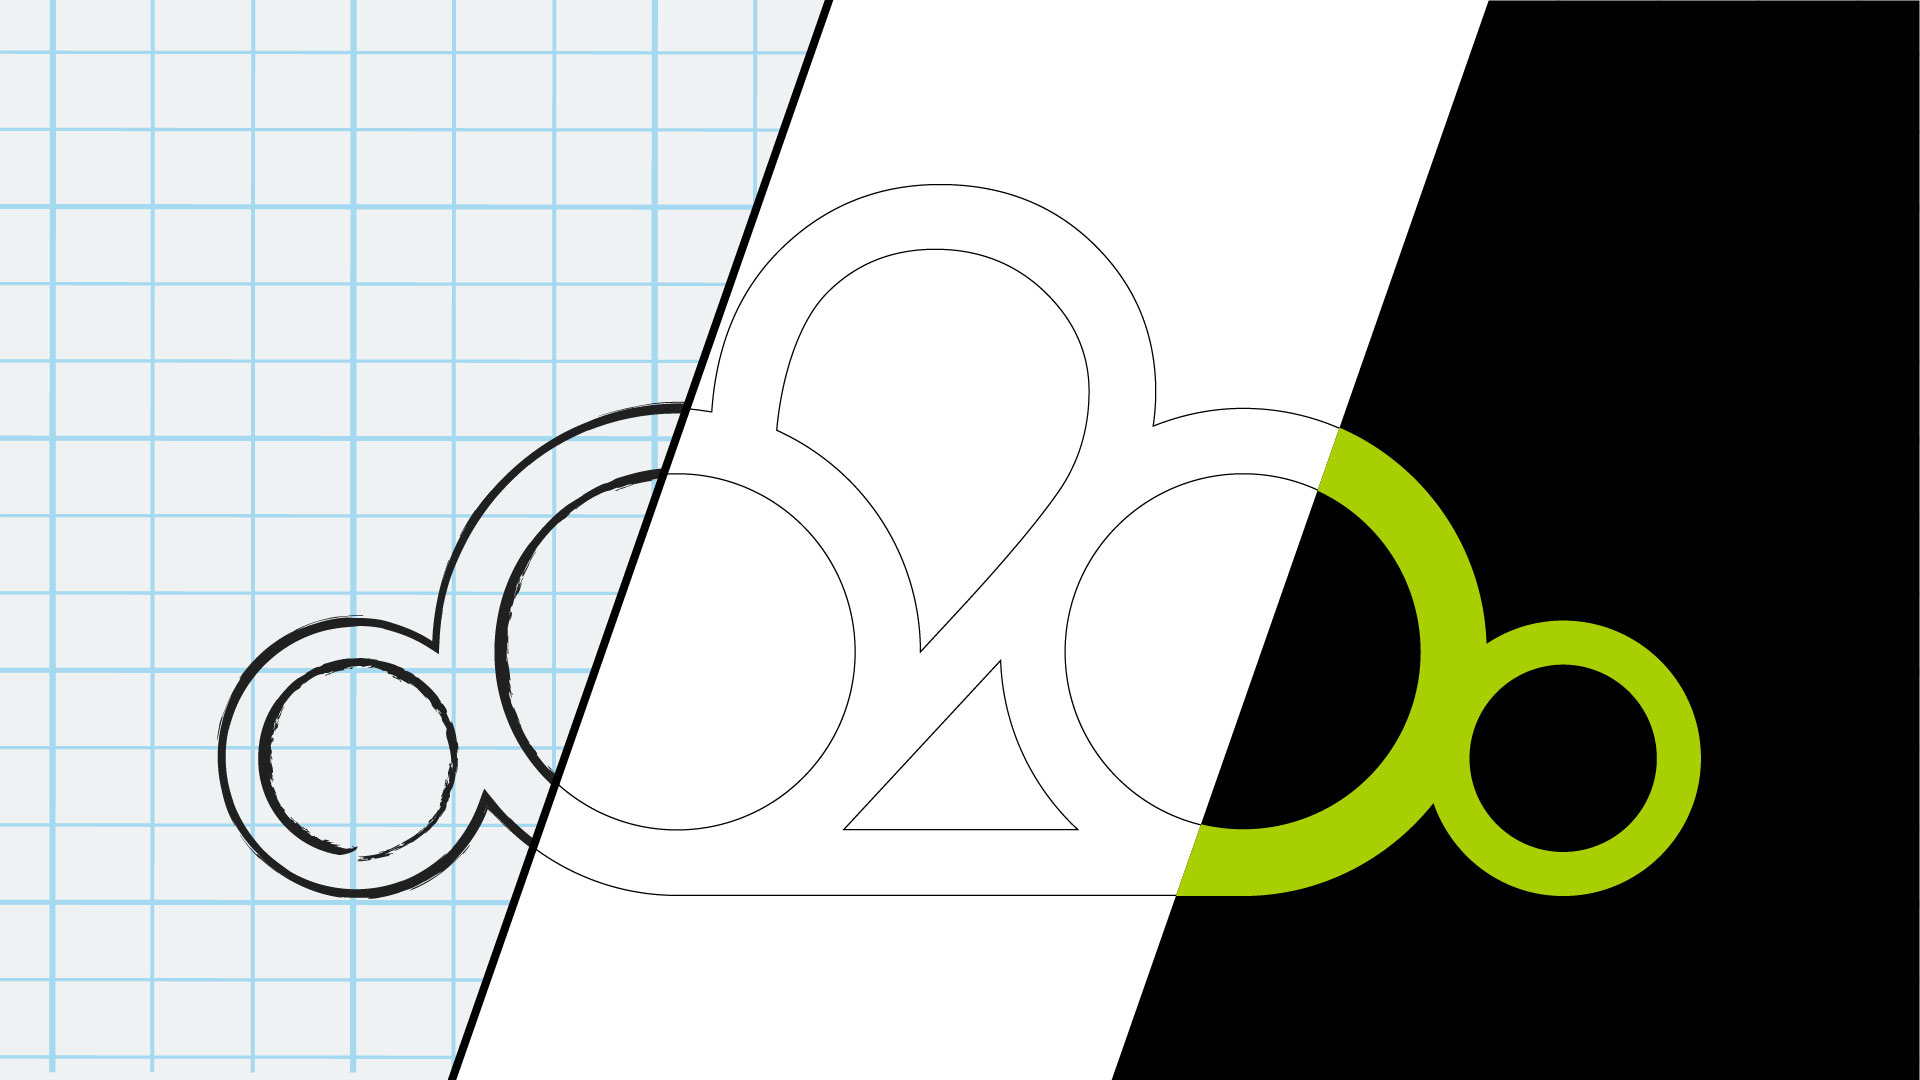 illustration of the concept stages of logo design